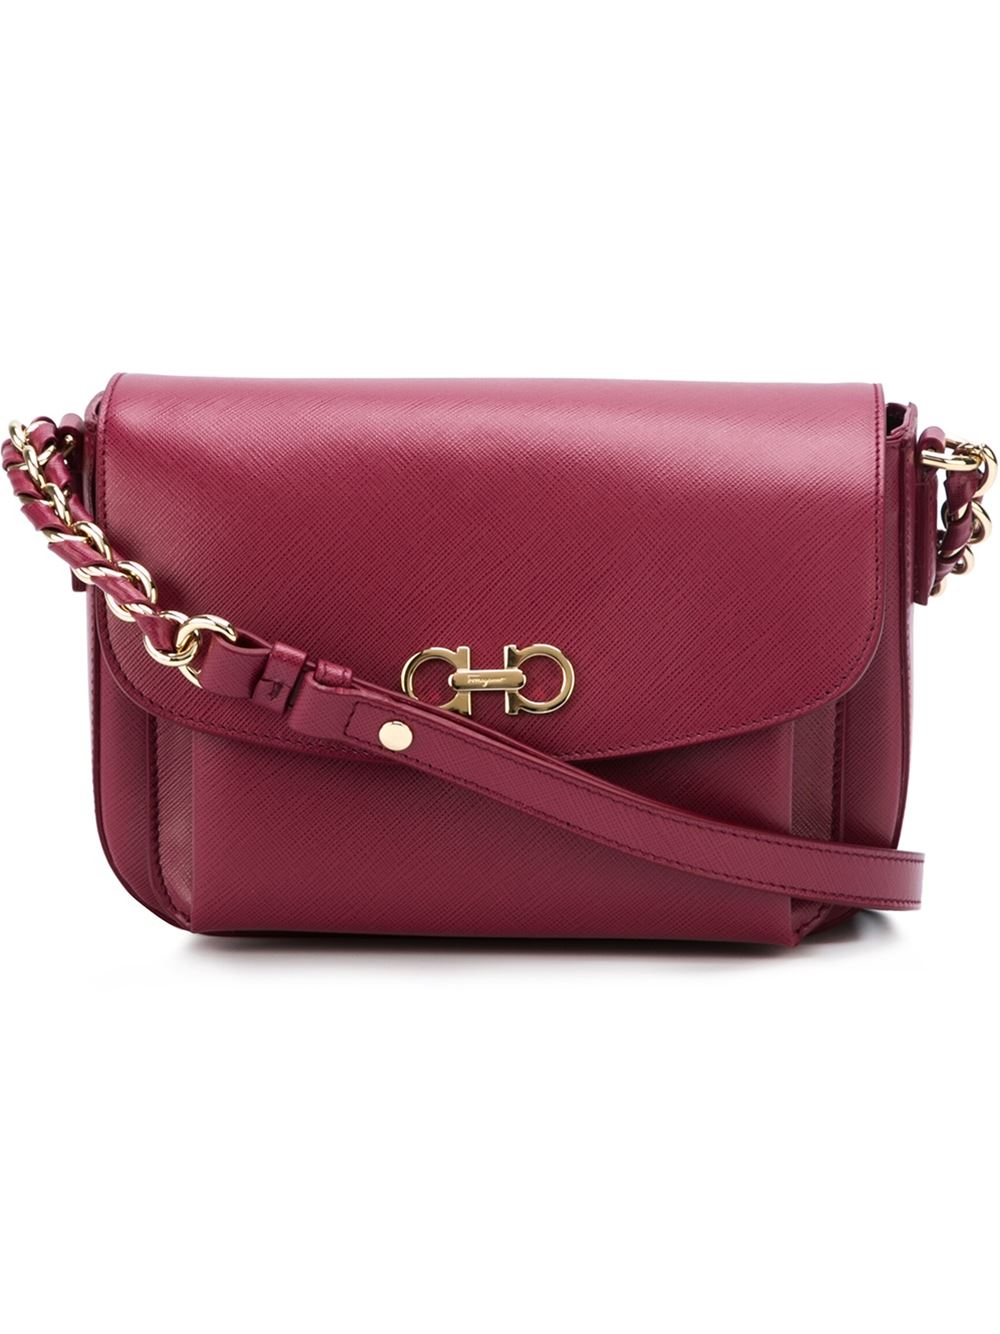 7b642a5800 Ferragamo  sandrine  Shoulder Bag in Pink - Lyst